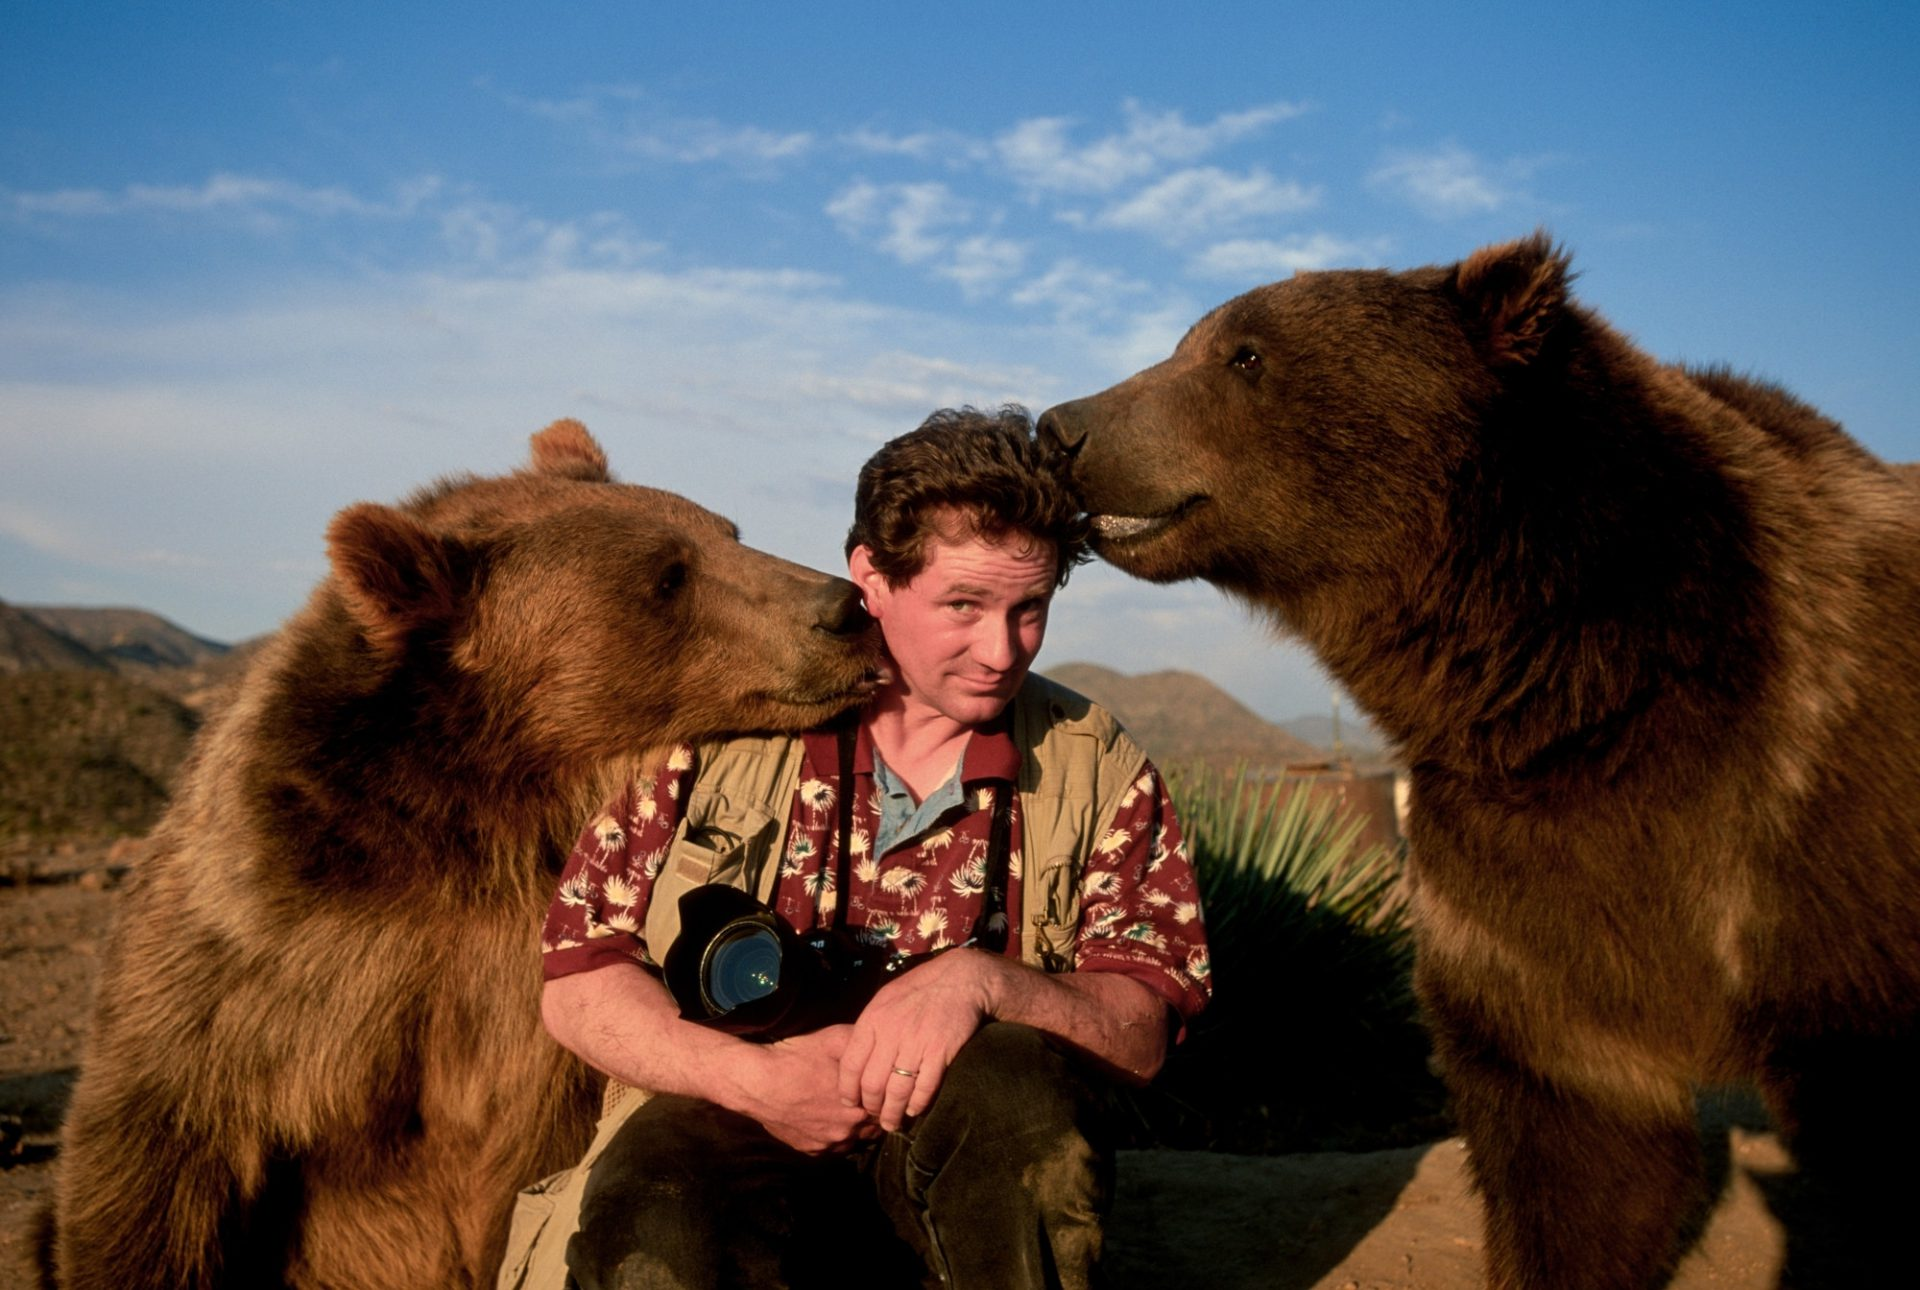 Photo: Joel Sartore gets a little affection from two trained grizzly bears.